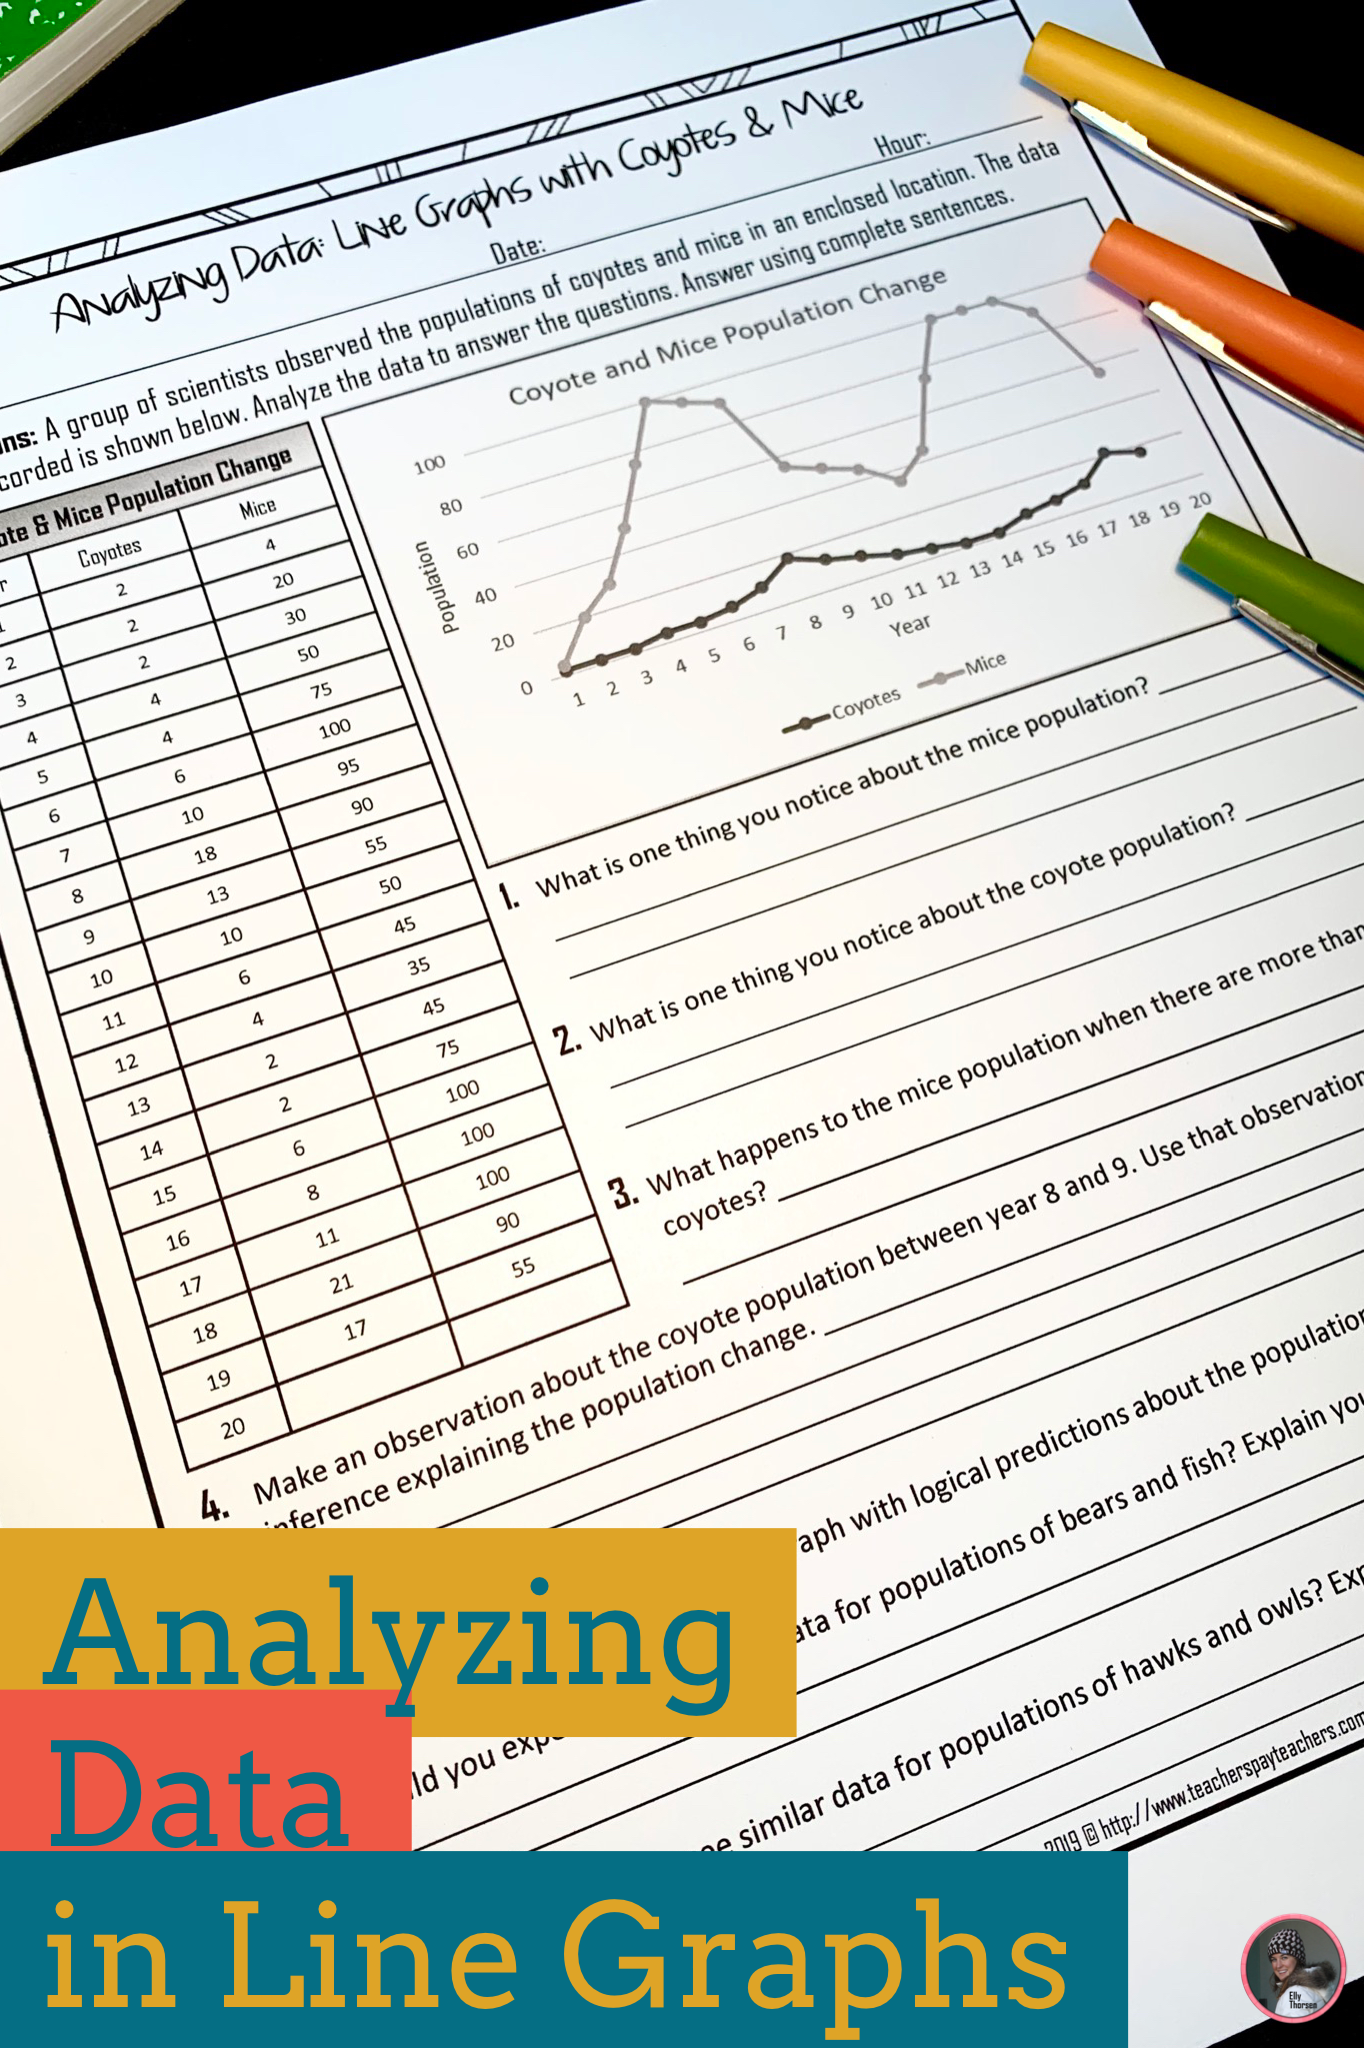 Analyzing Data With Line Graphs How To Interpret Line Graphs Science Lessons Middle School Middle School Science Experiments Line Graphs [ 2048 x 1364 Pixel ]